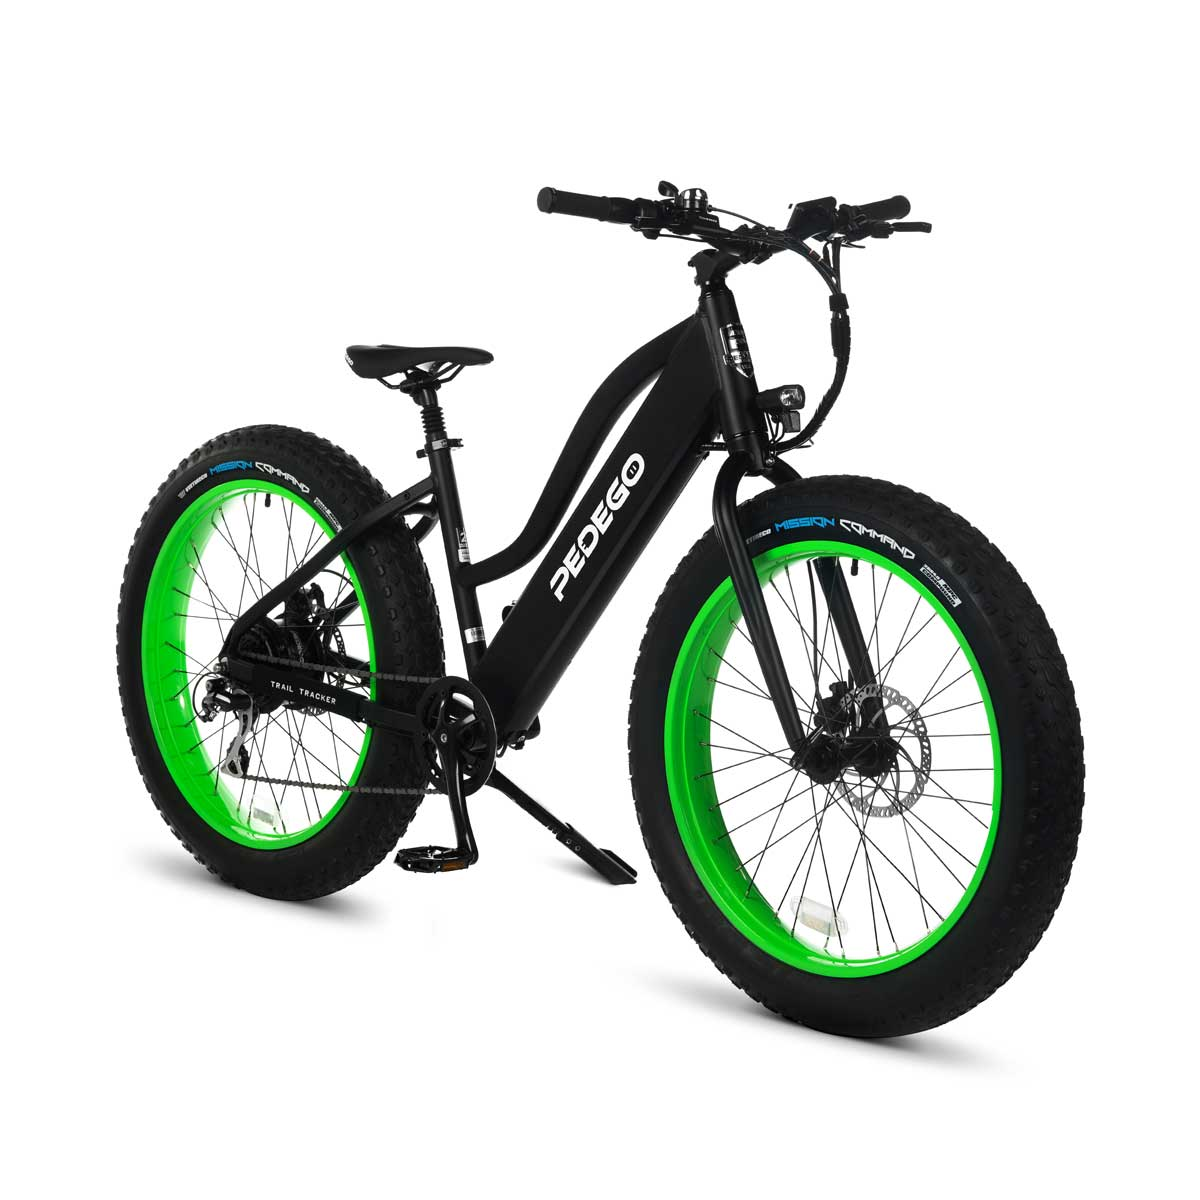 Pedego trail tracker lime green